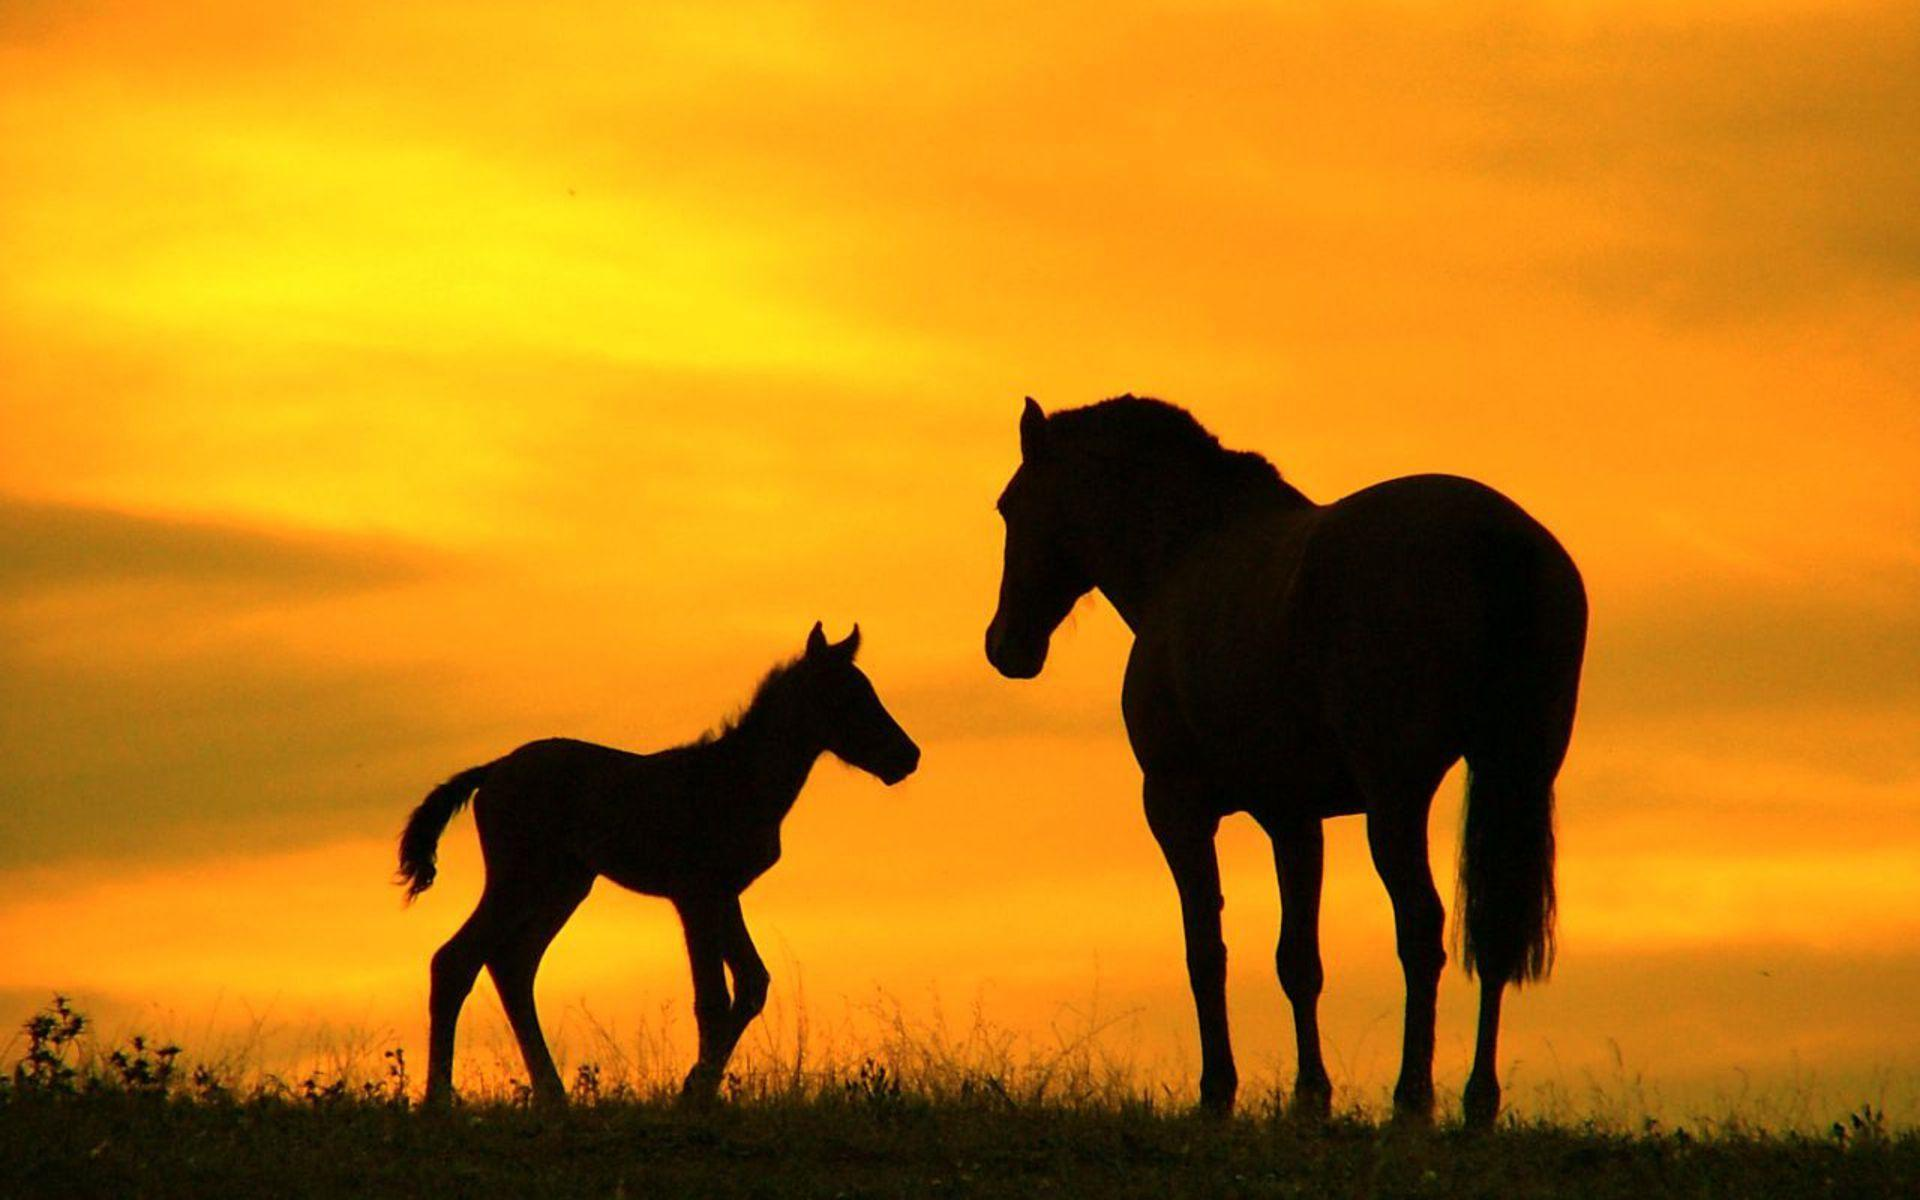 Horses pictures family horse ranch free wallpaper in free desktop backgrounds category: Horse-backgrounds.